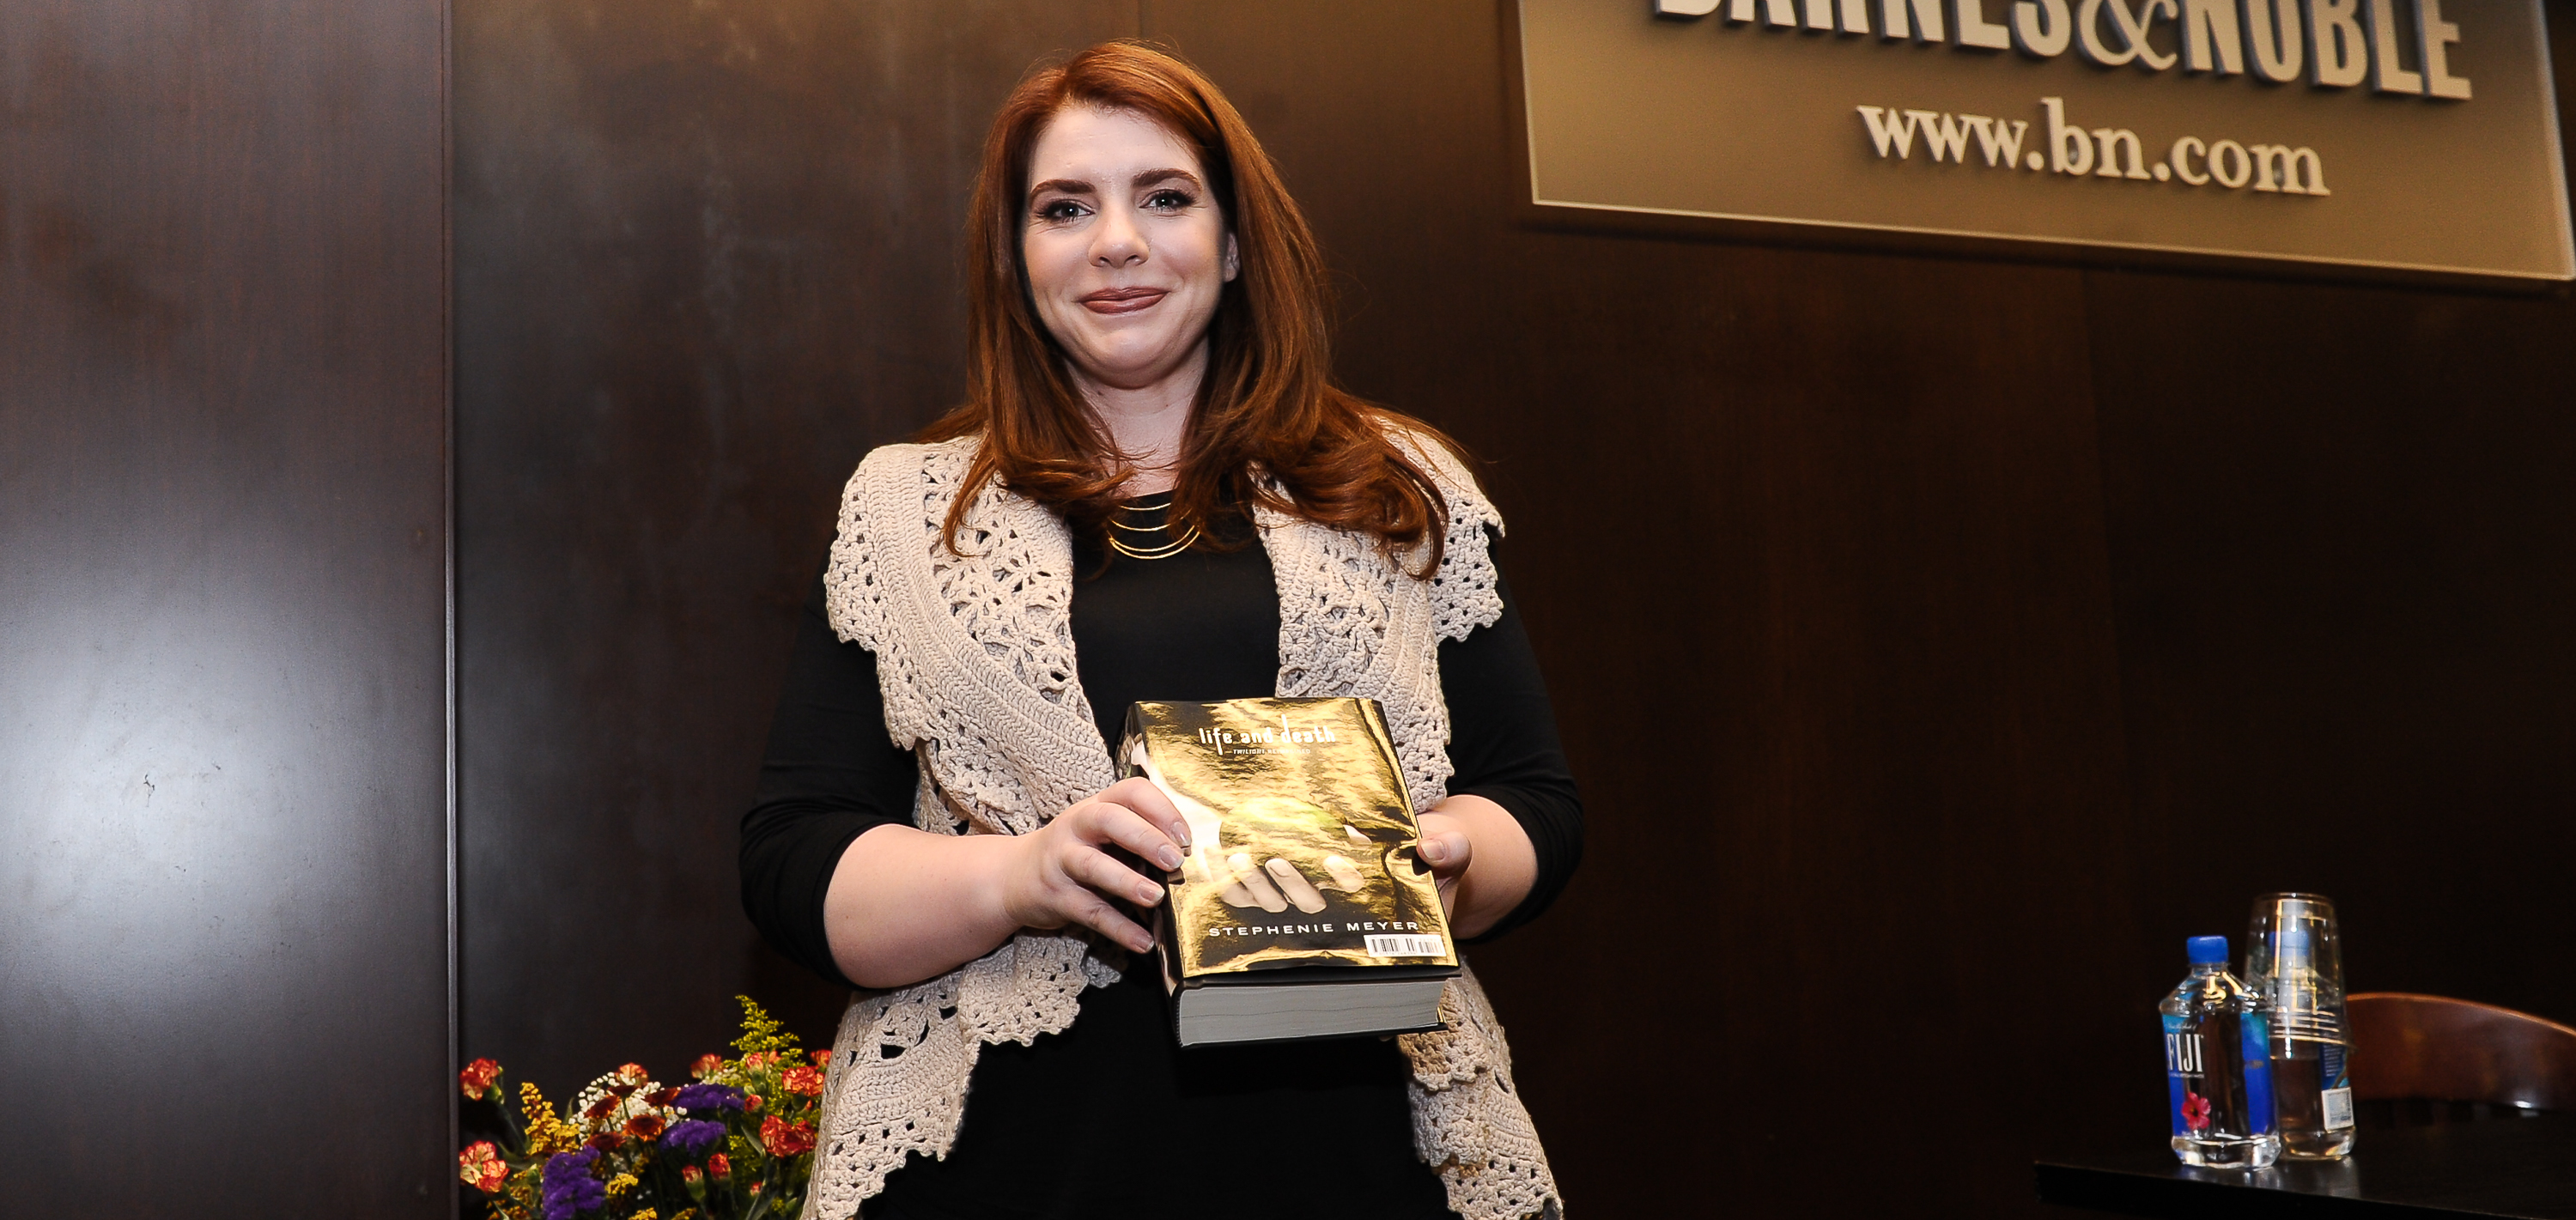 Stephenie Meyer Countdown Clock Has Fans Frenzied